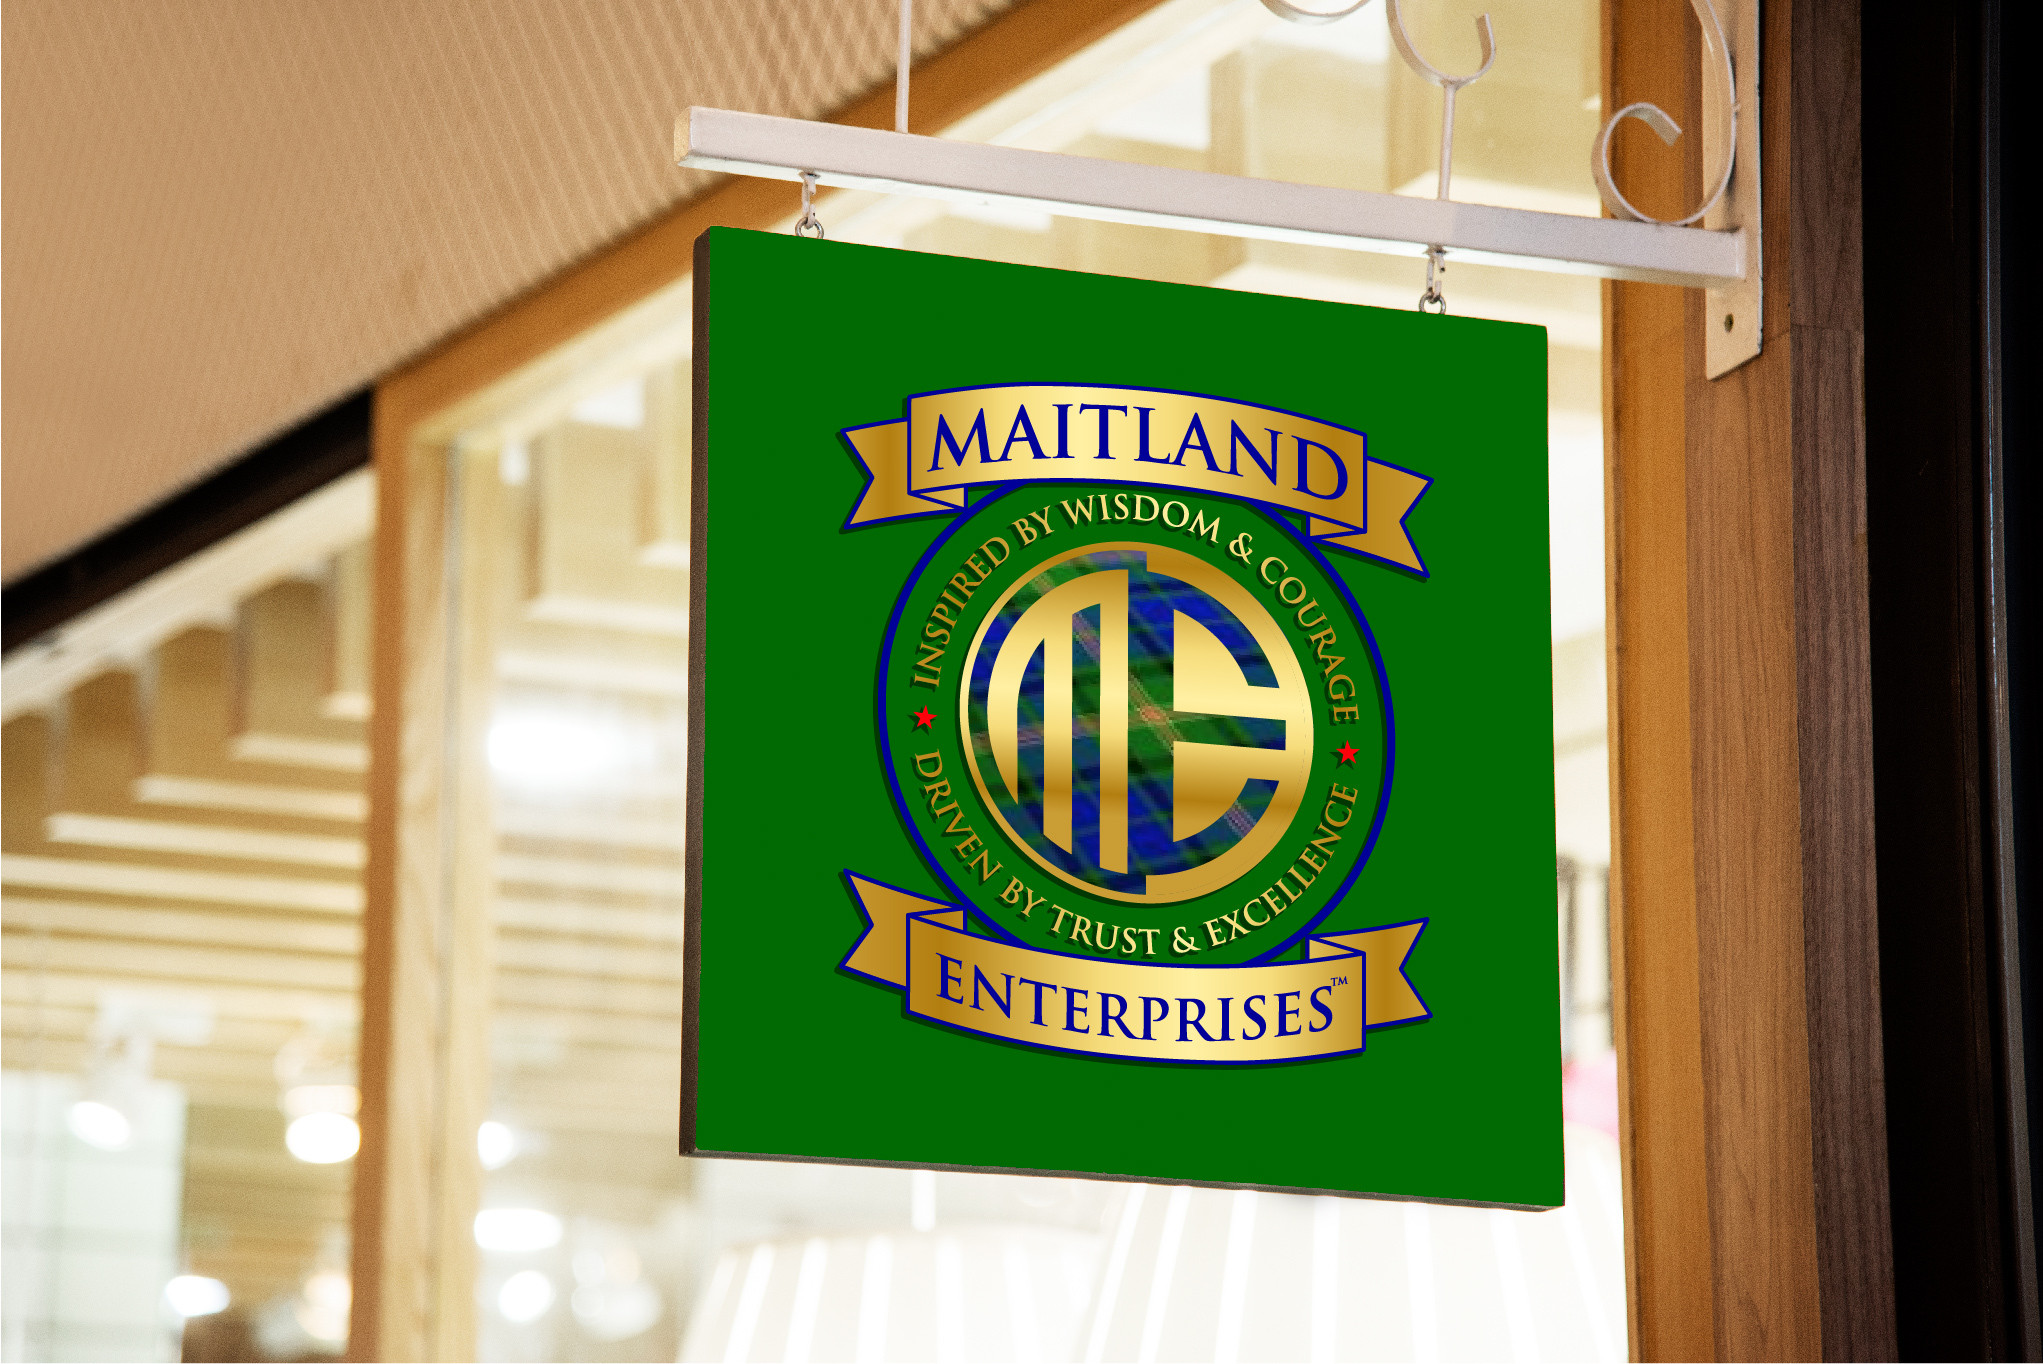 Maitland Enterprises™ - Inspired by Wisdom & Courage... Driven By Trust & Excellence!